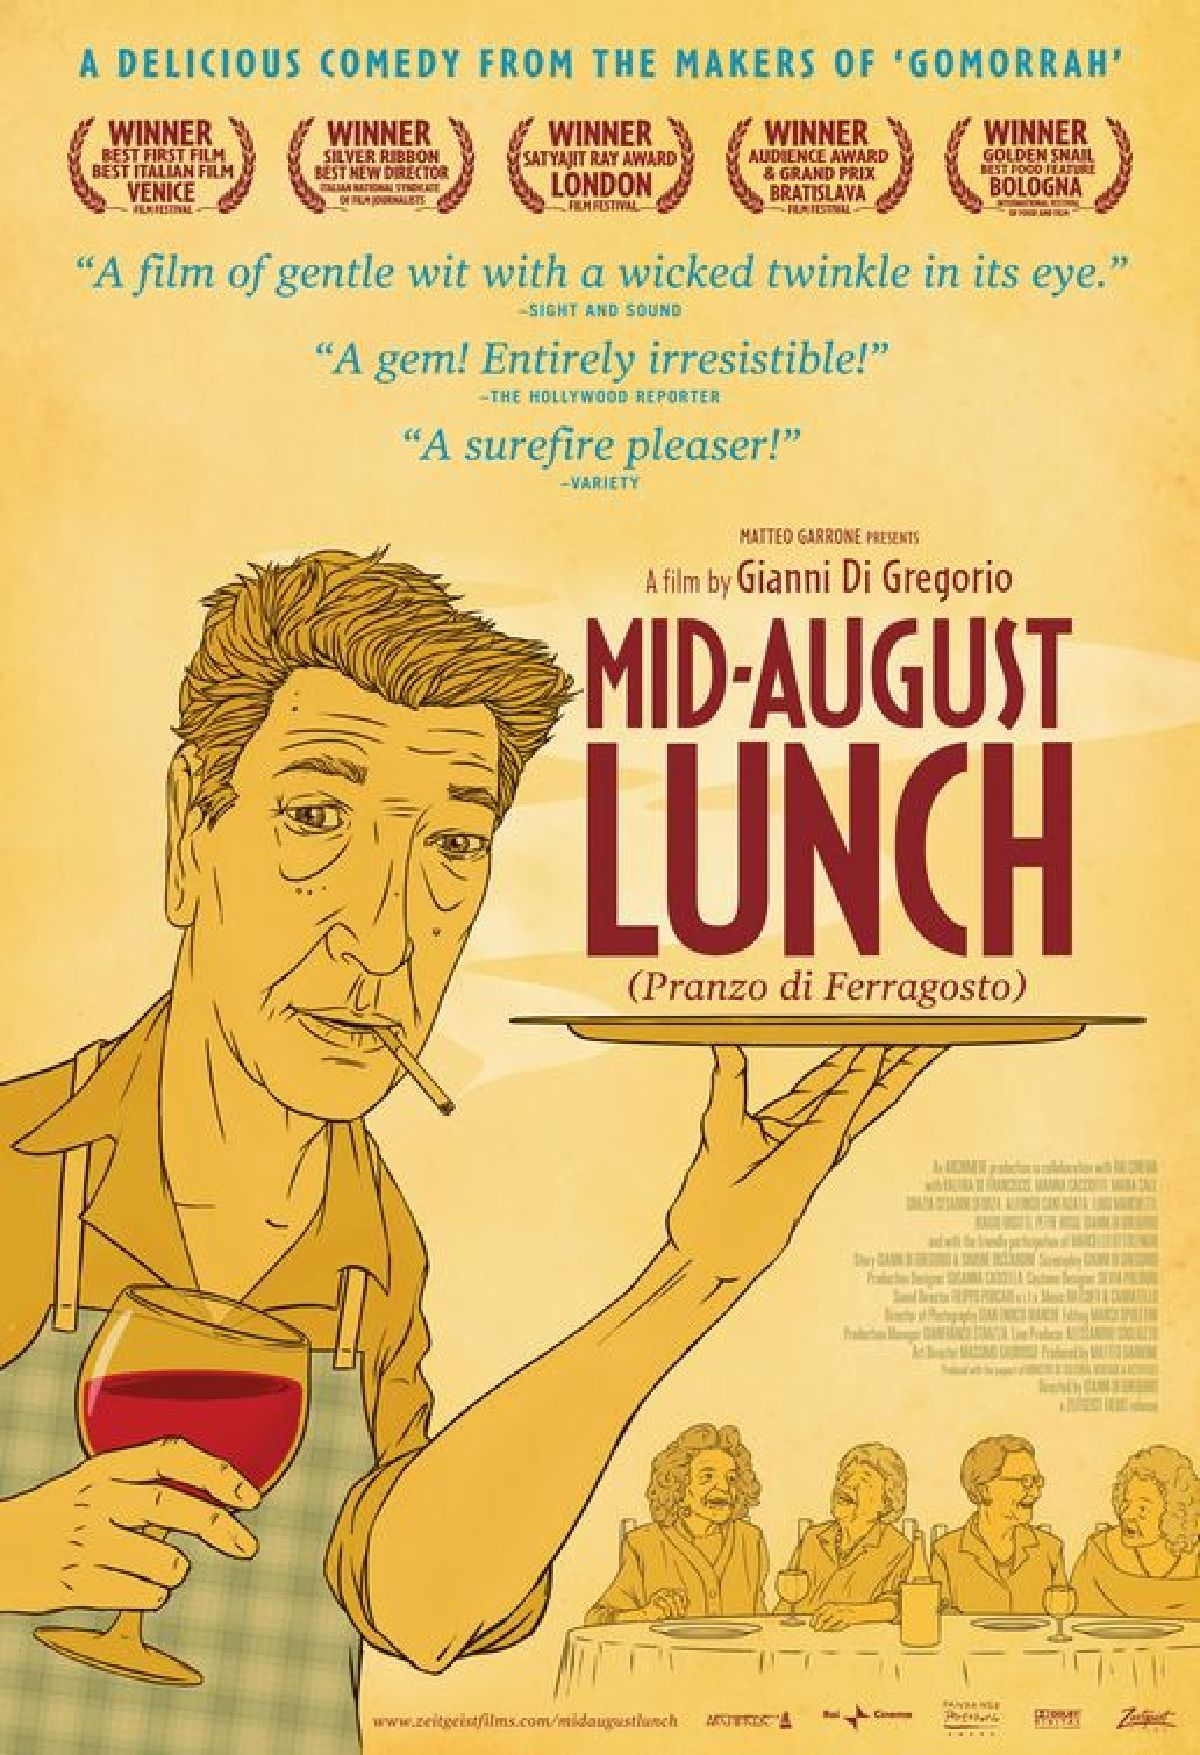 'Mid-August Lunch (Pranzo di Ferragosto)' movie poster